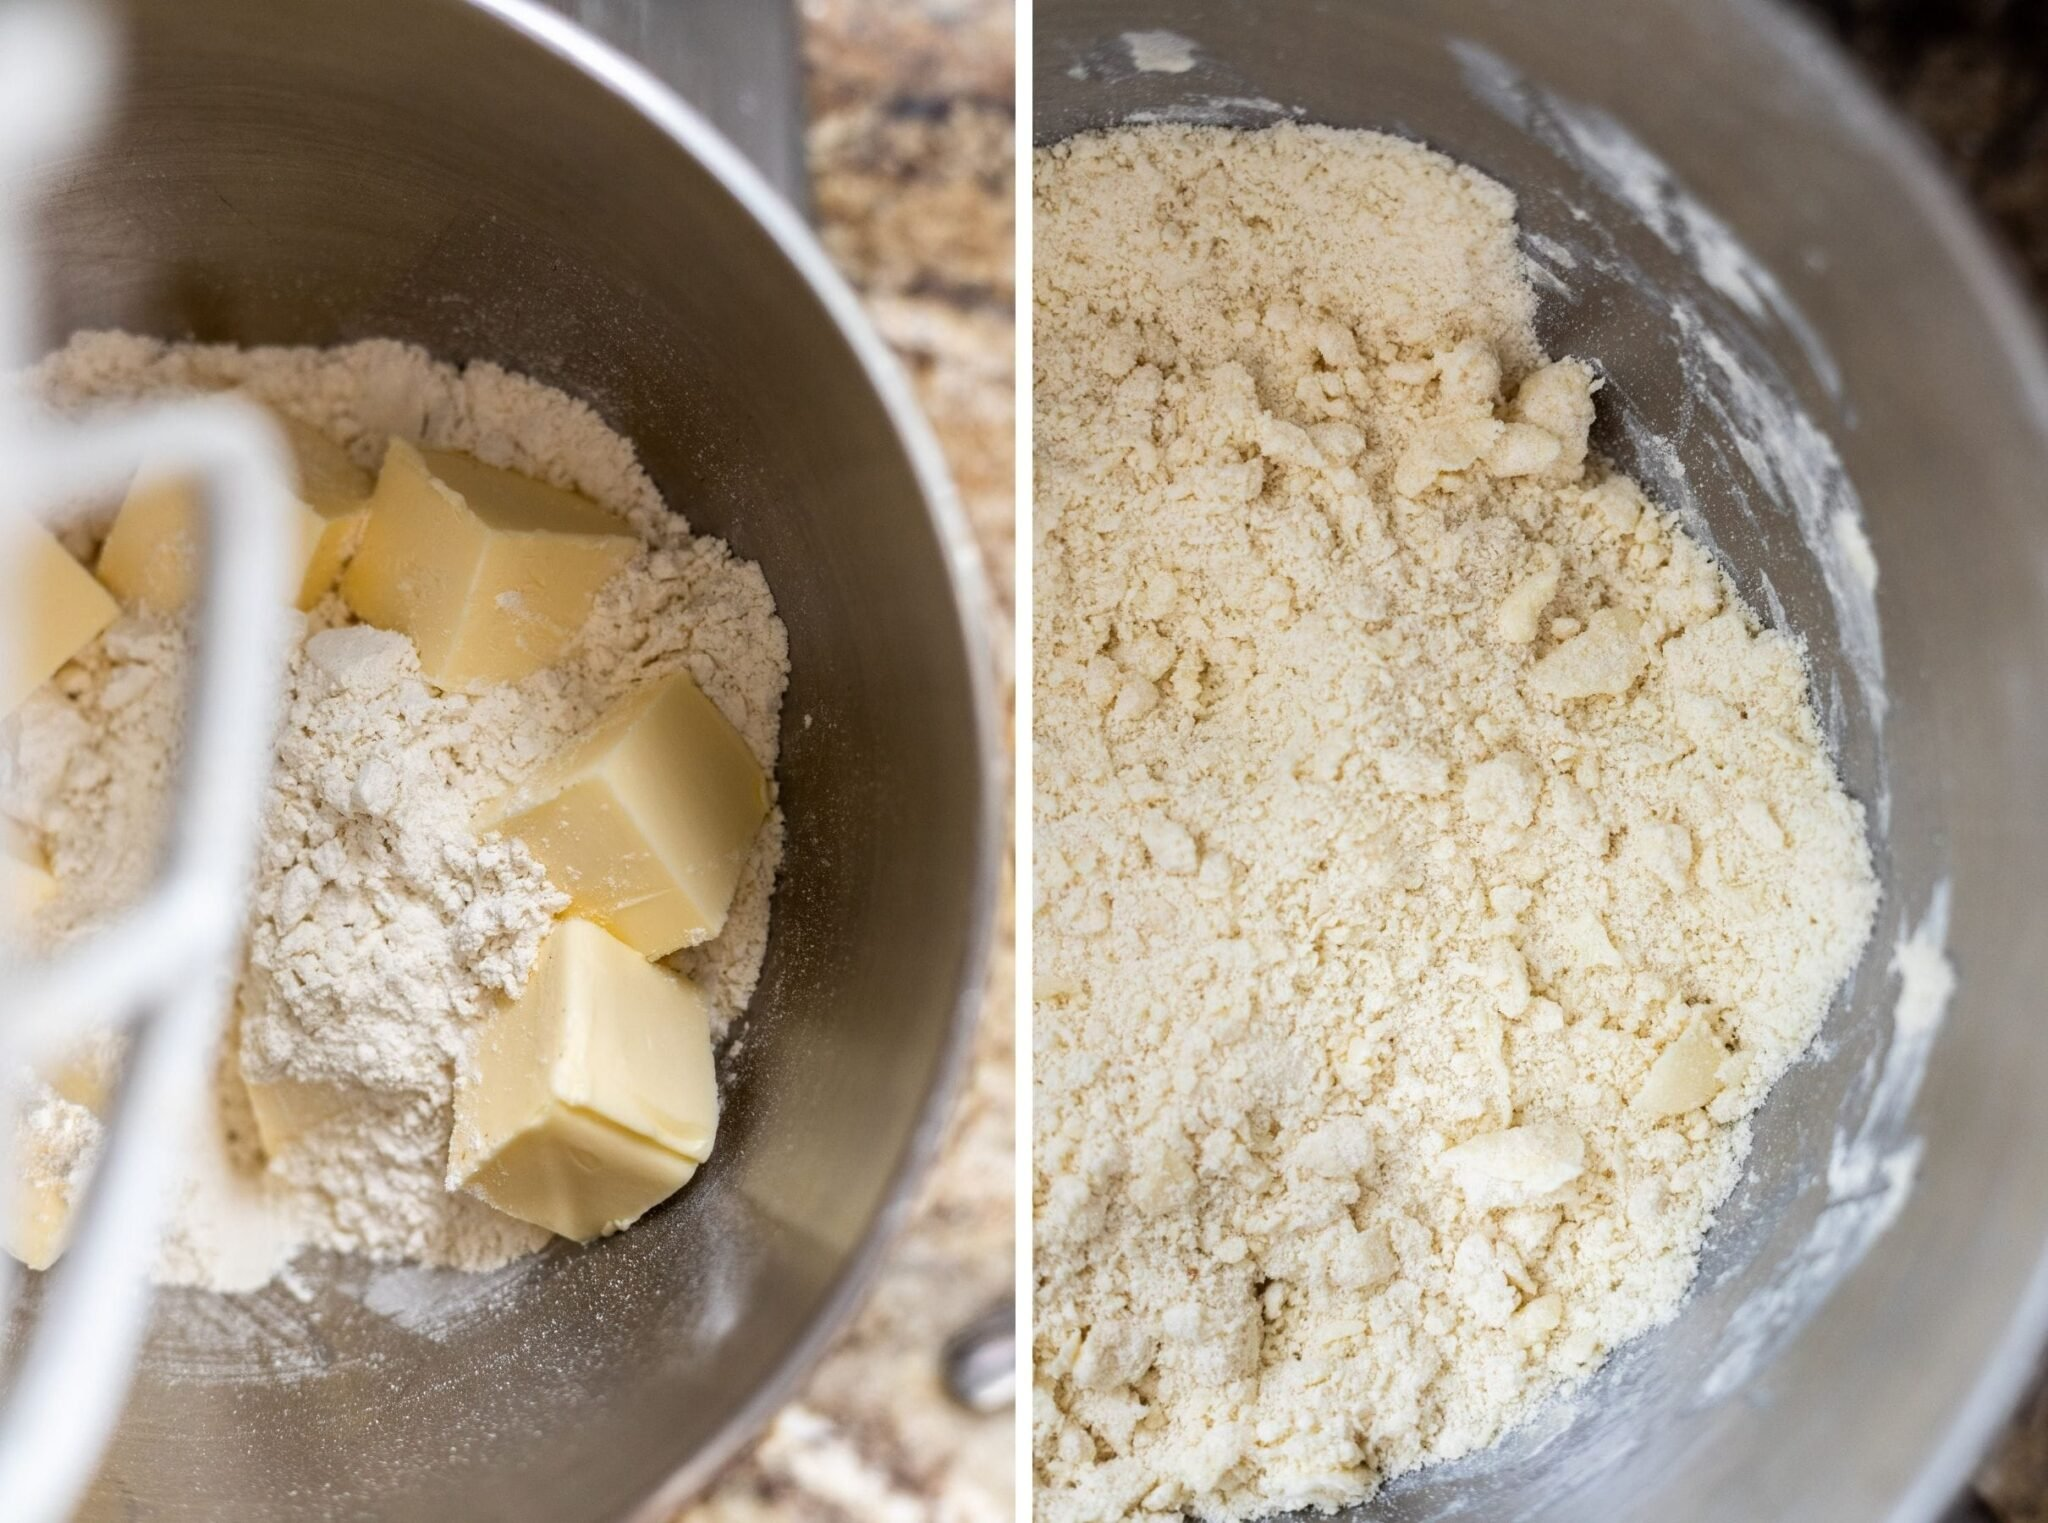 A photo collage of flour and butter in a stand mixer before mixing and mixed flour and butter.